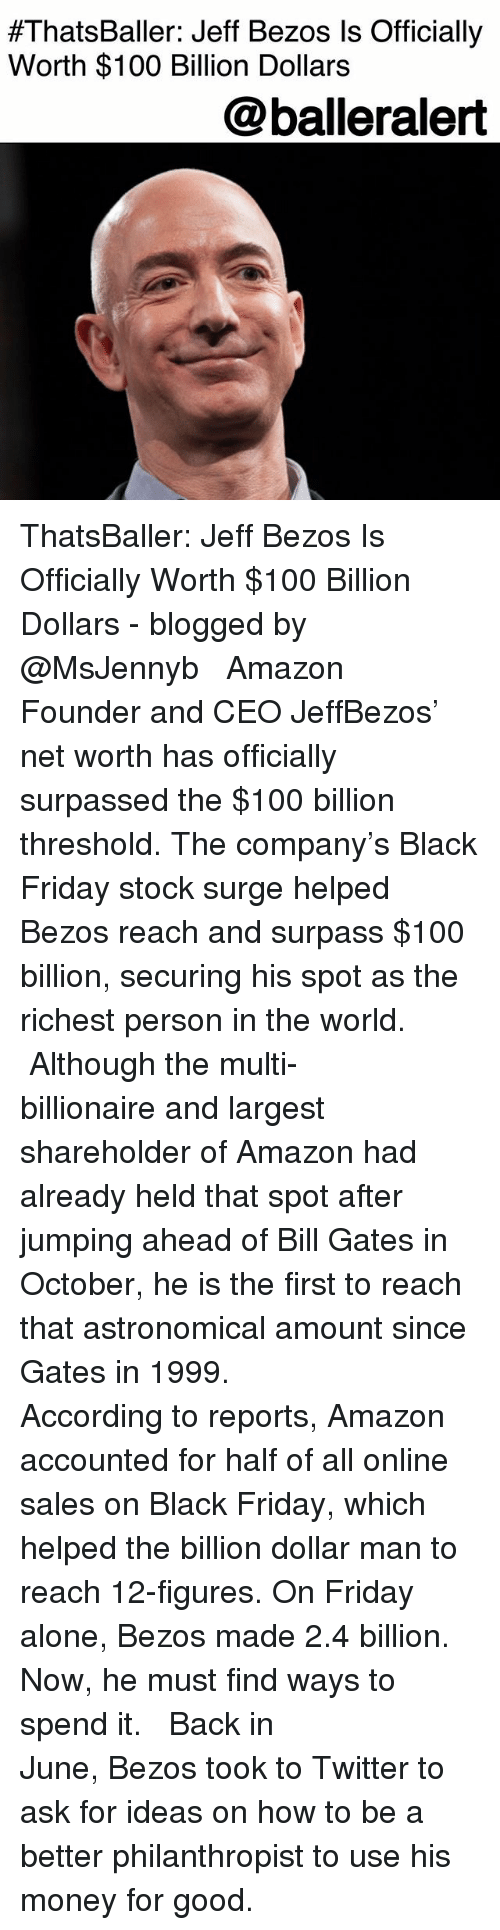 Jeff Bezos:  #ThatsBaller: Jeff Bezos Is Officially  Worth $100 Billion Dollars  @balleralert ThatsBaller: Jeff Bezos Is Officially Worth $100 Billion Dollars - blogged by @MsJennyb ⠀⠀⠀⠀⠀⠀⠀ ⠀⠀⠀⠀⠀⠀⠀ Amazon Founder and CEO JeffBezos' net worth has officially surpassed the $100 billion threshold. The company's Black Friday stock surge helped Bezos reach and surpass $100 billion, securing his spot as the richest person in the world. ⠀⠀⠀⠀⠀⠀⠀ ⠀⠀⠀⠀⠀⠀⠀ Although the multi-billionaire and largest shareholder of Amazon had already held that spot after jumping ahead of Bill Gates in October, he is the first to reach that astronomical amount since Gates in 1999. ⠀⠀⠀⠀⠀⠀⠀ ⠀⠀⠀⠀⠀⠀⠀ According to reports, Amazon accounted for half of all online sales on Black Friday, which helped the billion dollar man to reach 12-figures. On Friday alone, Bezos made 2.4 billion. Now, he must find ways to spend it. ⠀⠀⠀⠀⠀⠀⠀ ⠀⠀⠀⠀⠀⠀⠀ Back in June, Bezos took to Twitter to ask for ideas on how to be a better philanthropist to use his money for good.